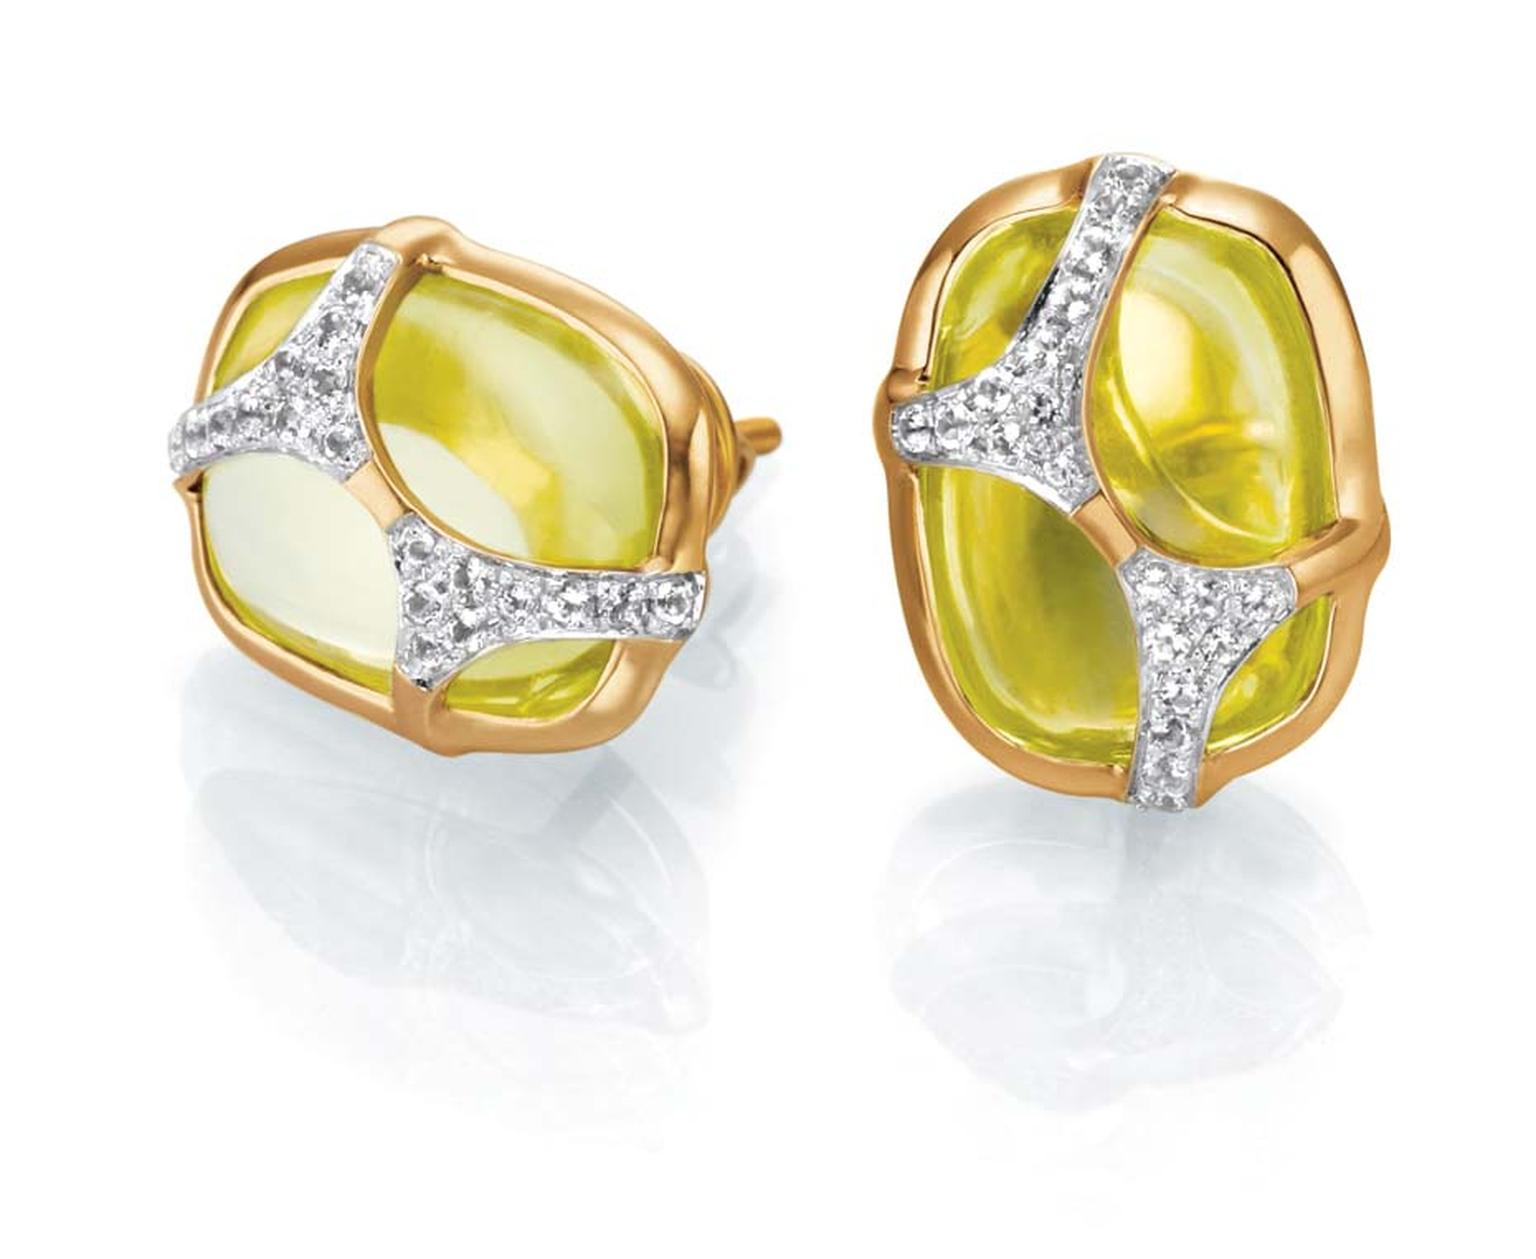 Tanishq IVA 2 collection gold ear studs with peridots, overlaid with diamonds.